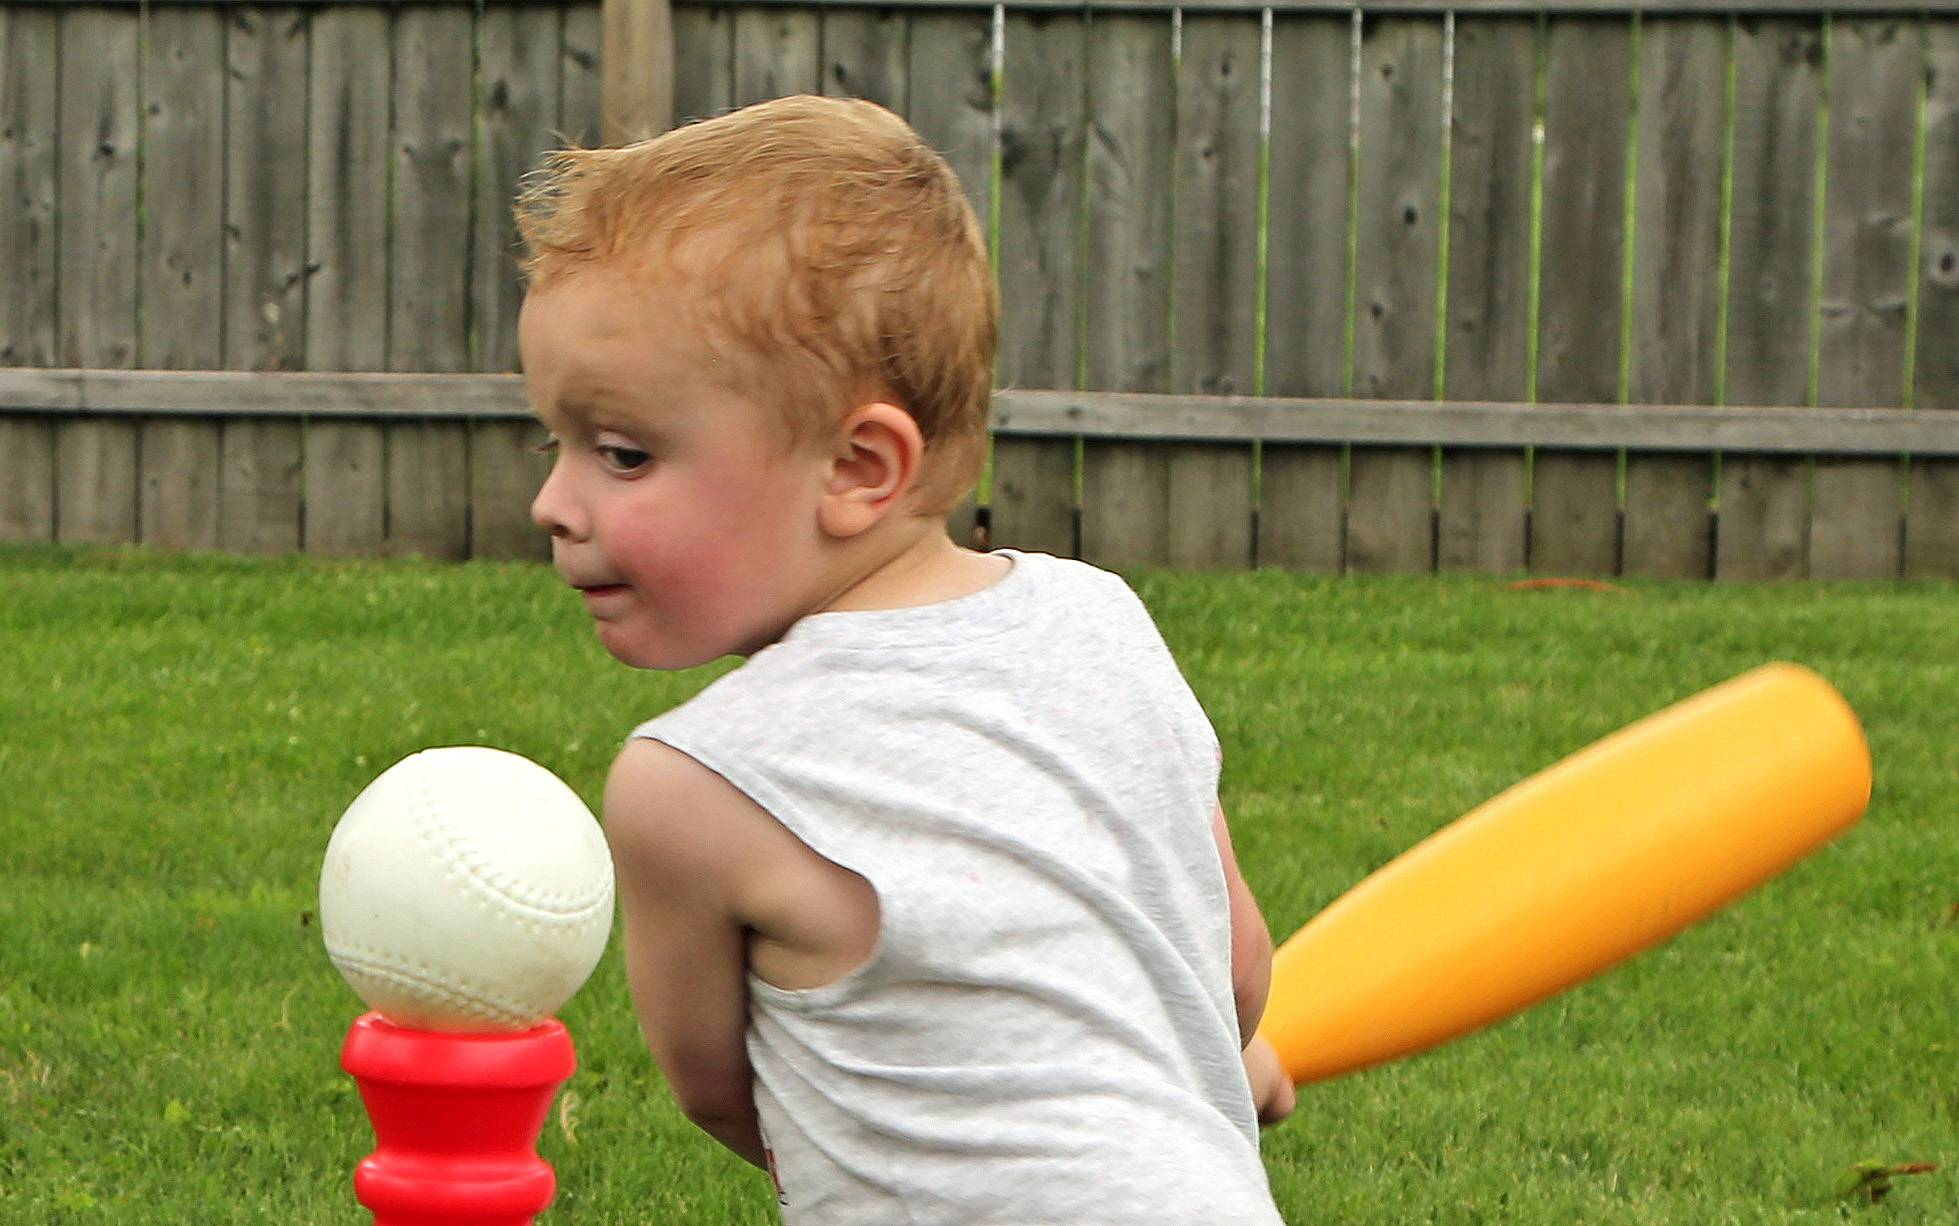 My great-nephew, Kyle, was very intent on keeping his eye on the ball during his third birthday party this summer. It was a Grand Slam and lots of fun that day.